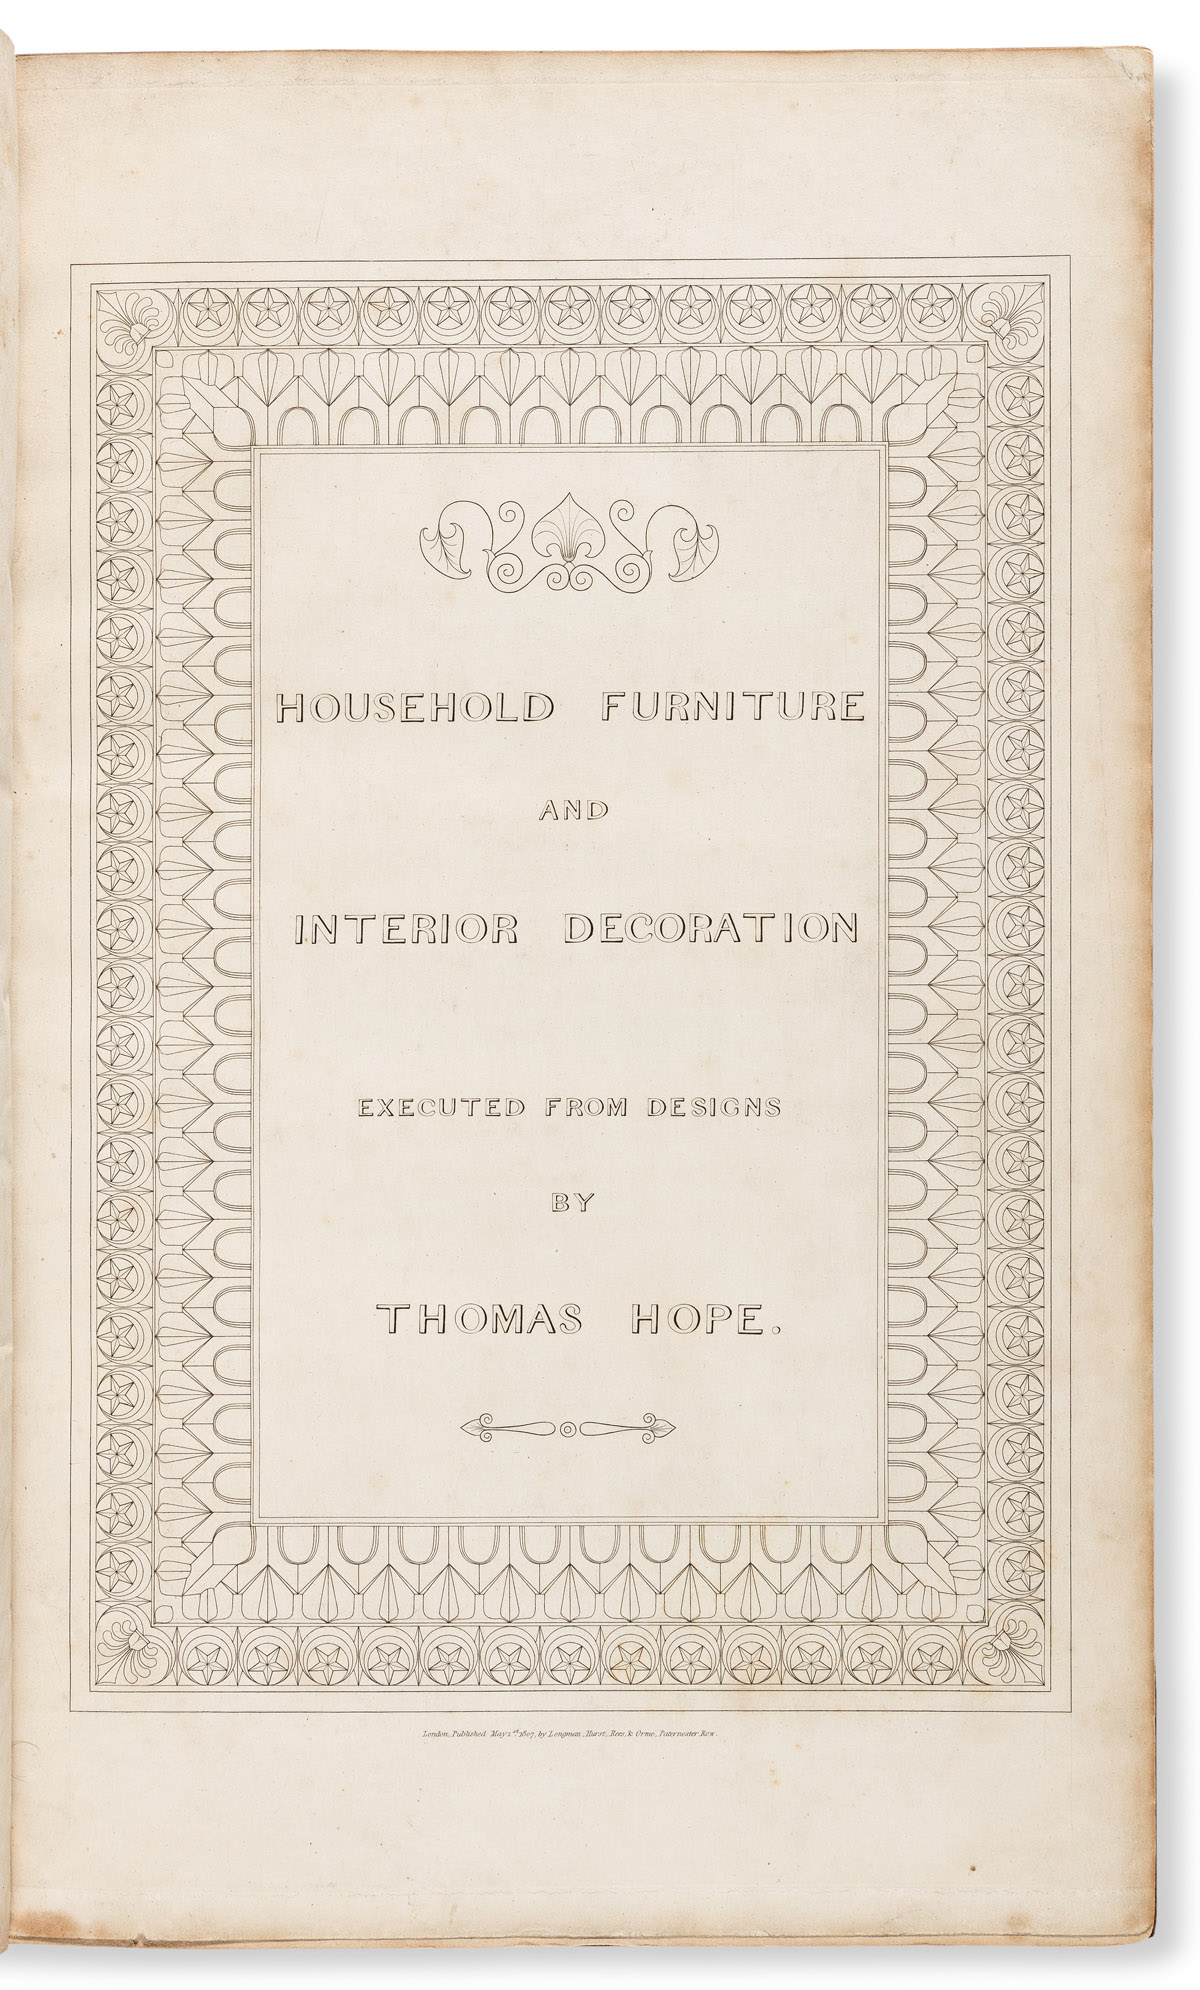 Hope, Thomas (1769-1831) Household Furniture and Interior Decoration.